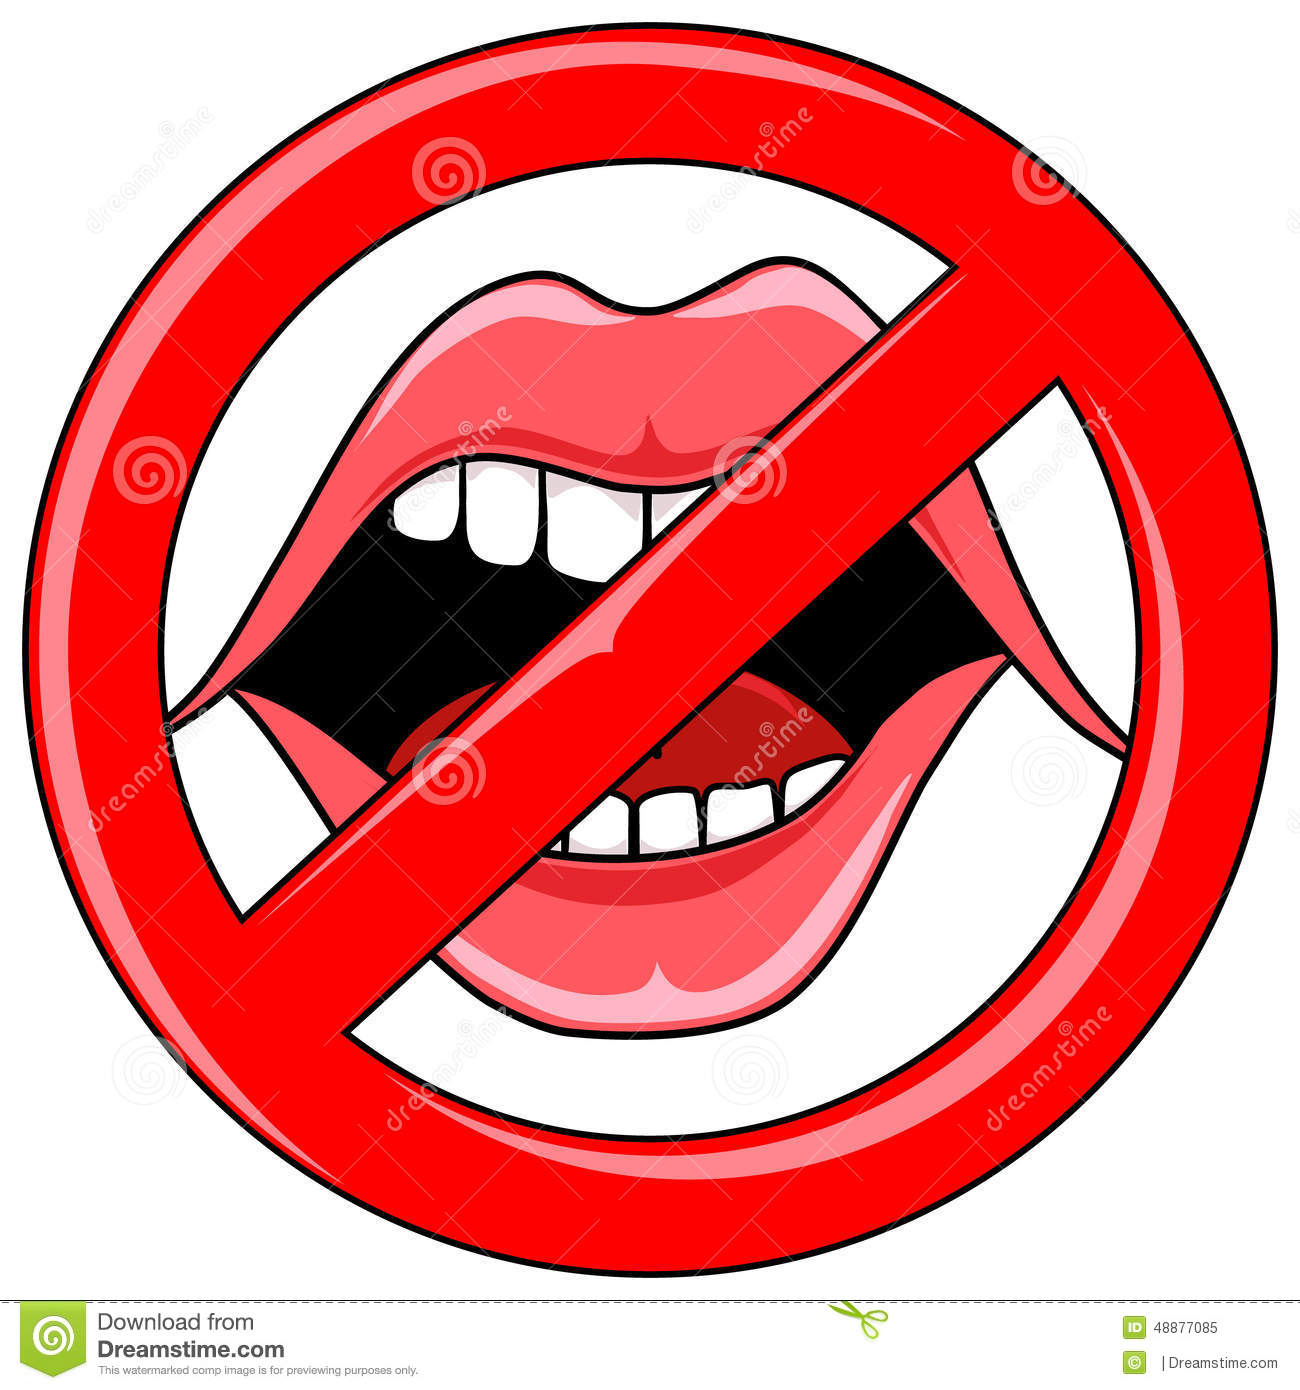 Open Talking Mouth With Red Banned Icon -Open Talking Mouth With Red Banned Icon Mr No Pr No 1 254 0-14